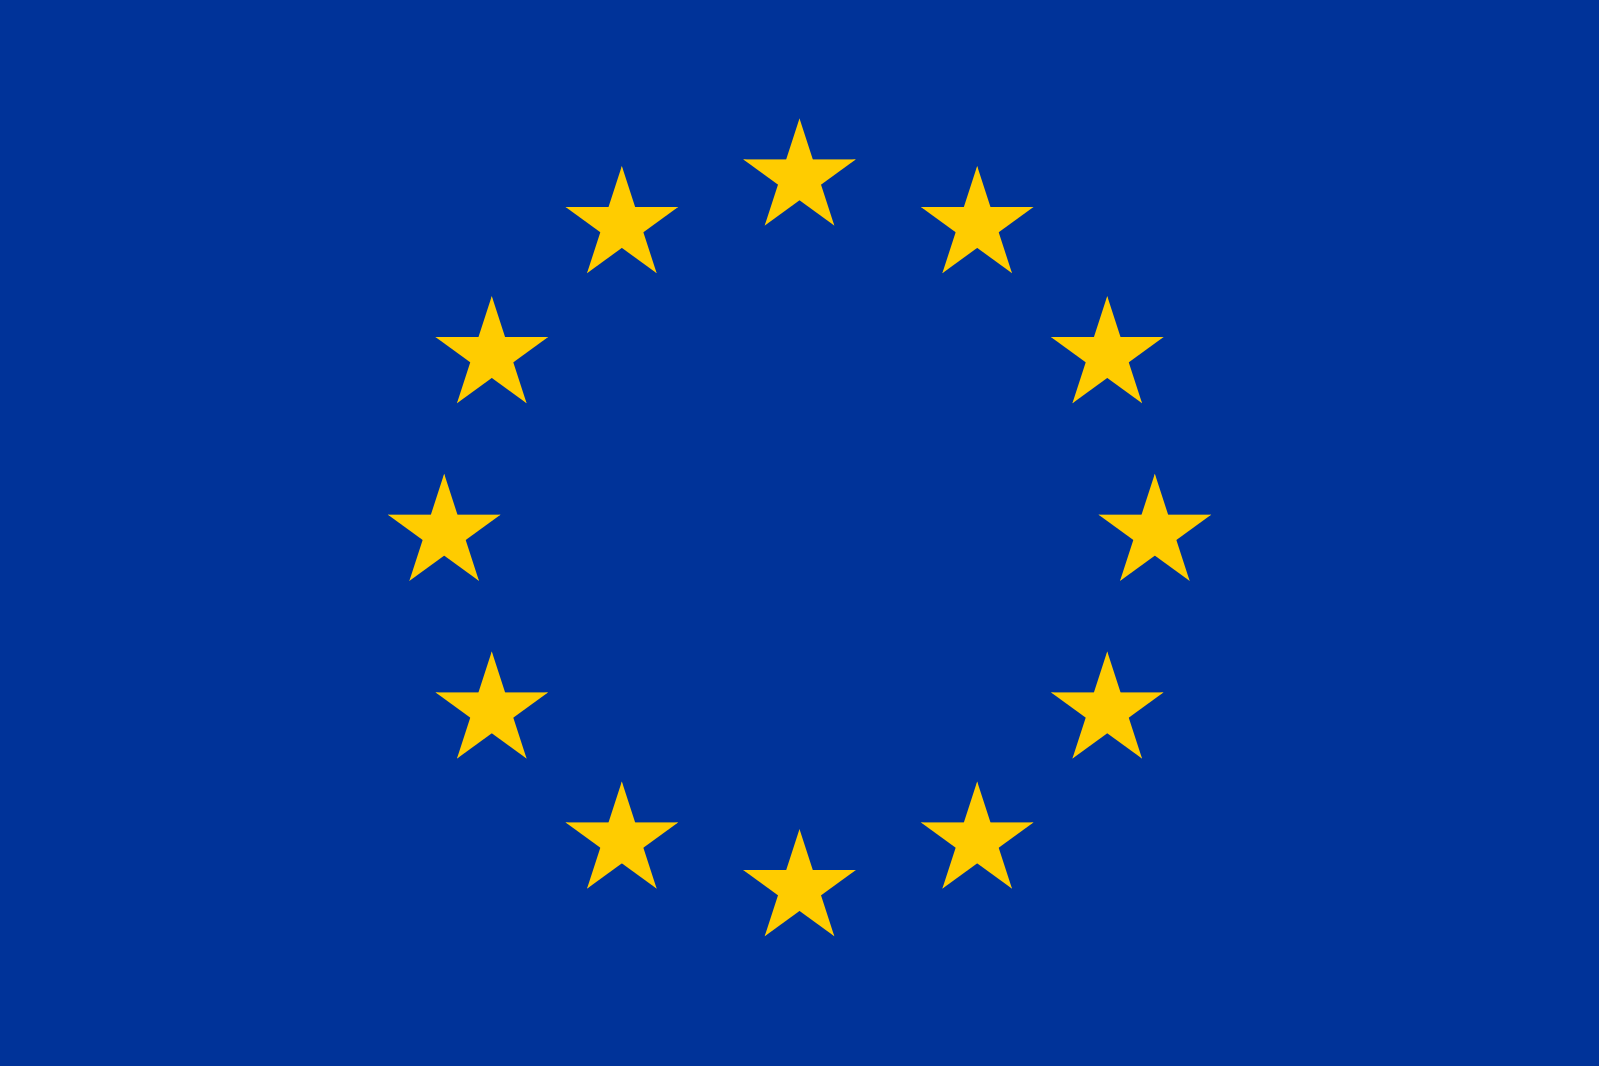 Flag_of_Europe 1599 px-